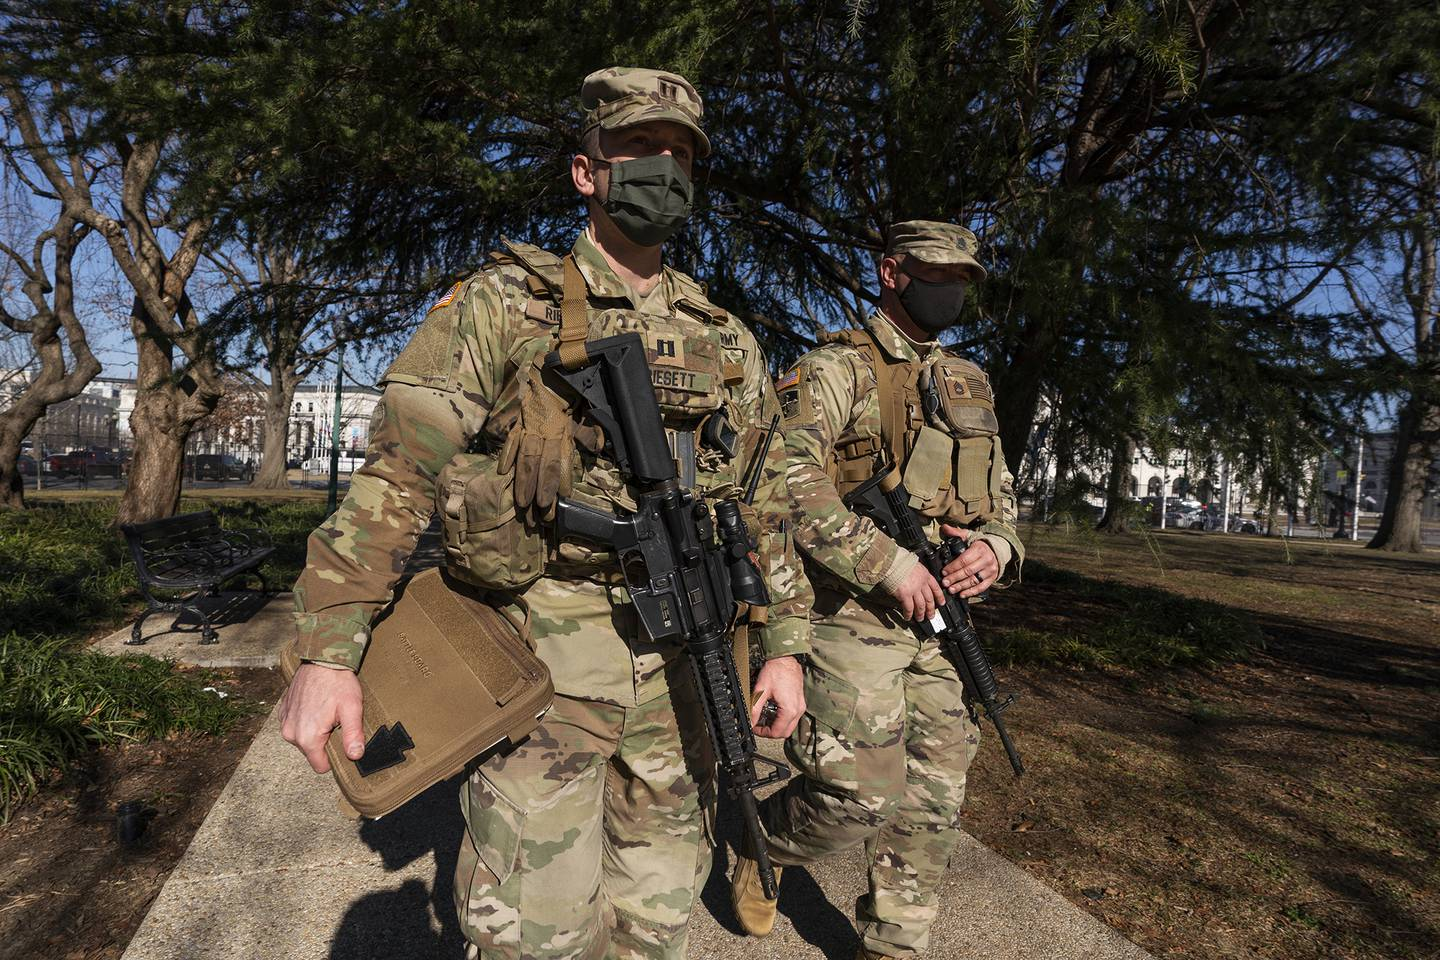 Armed members of the Maryland National Guard secures the perimeter around the U.S. Capitol, Wednesday, Jan. 13, 2021, in Washington.